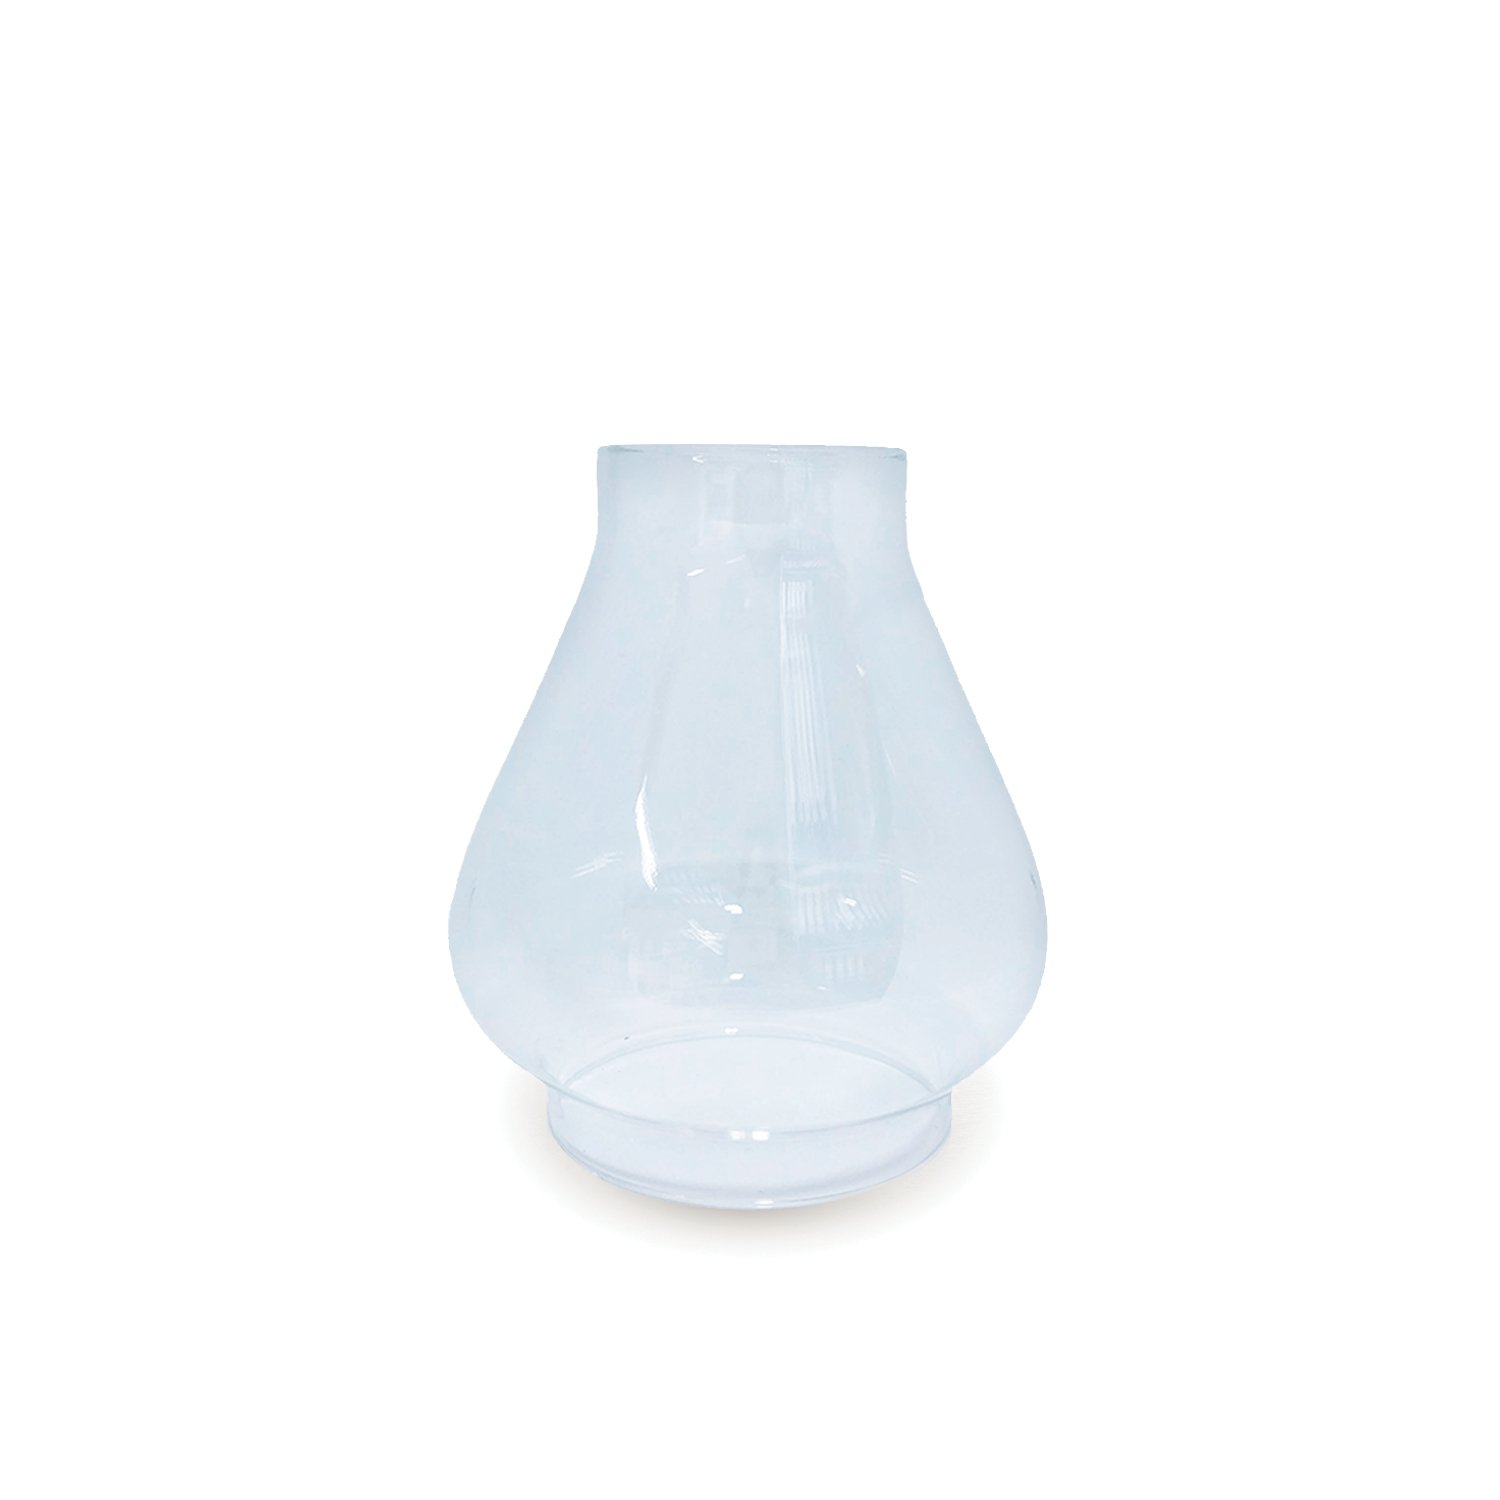 Replacement Glass Shades For Aladdin And Globe Lamps X 6